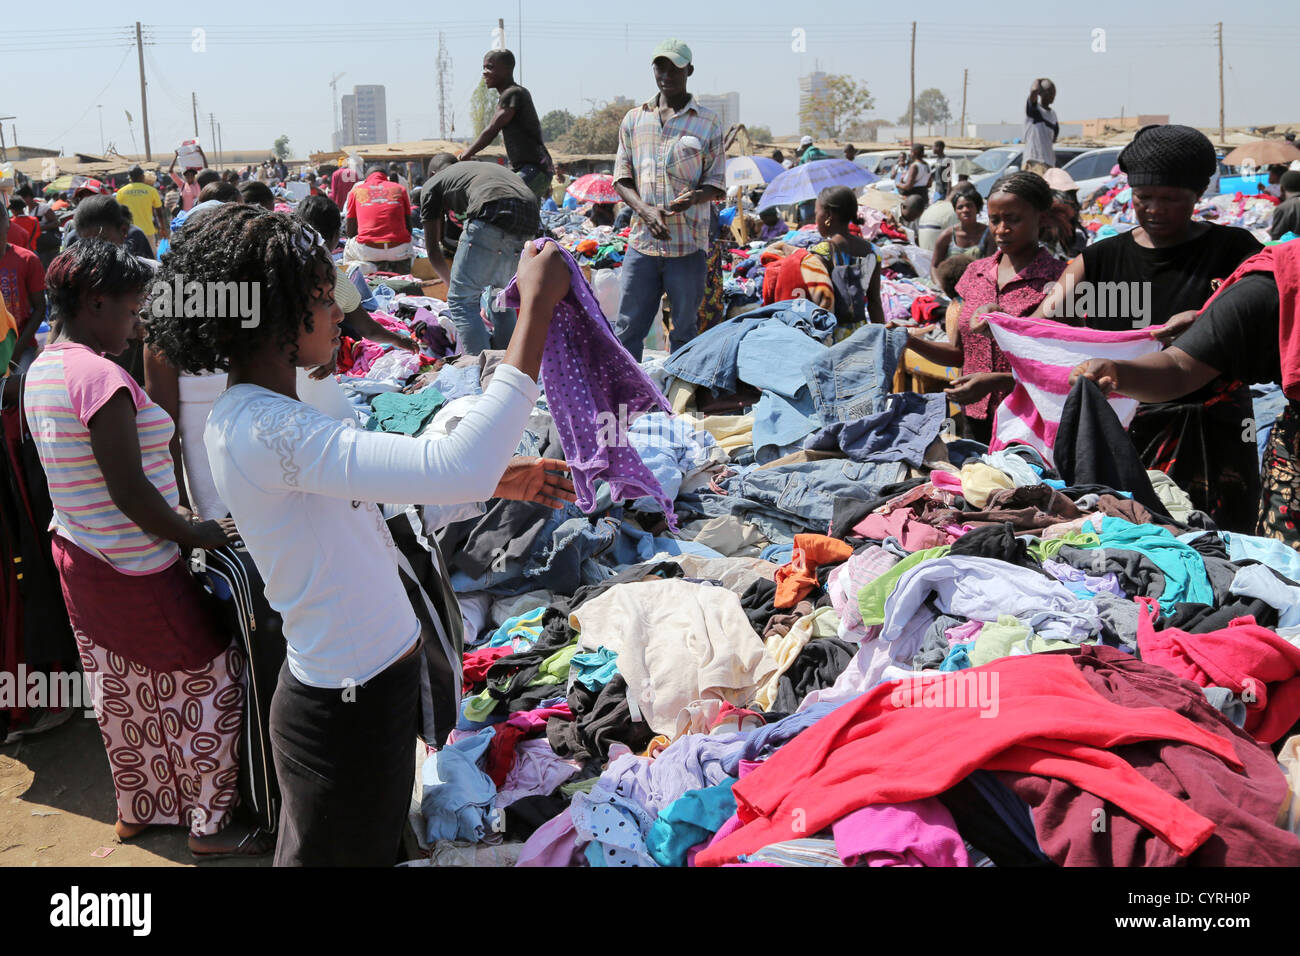 Old-Soweto second hand clothes market in Lusaka, Zambia. - Stock Image